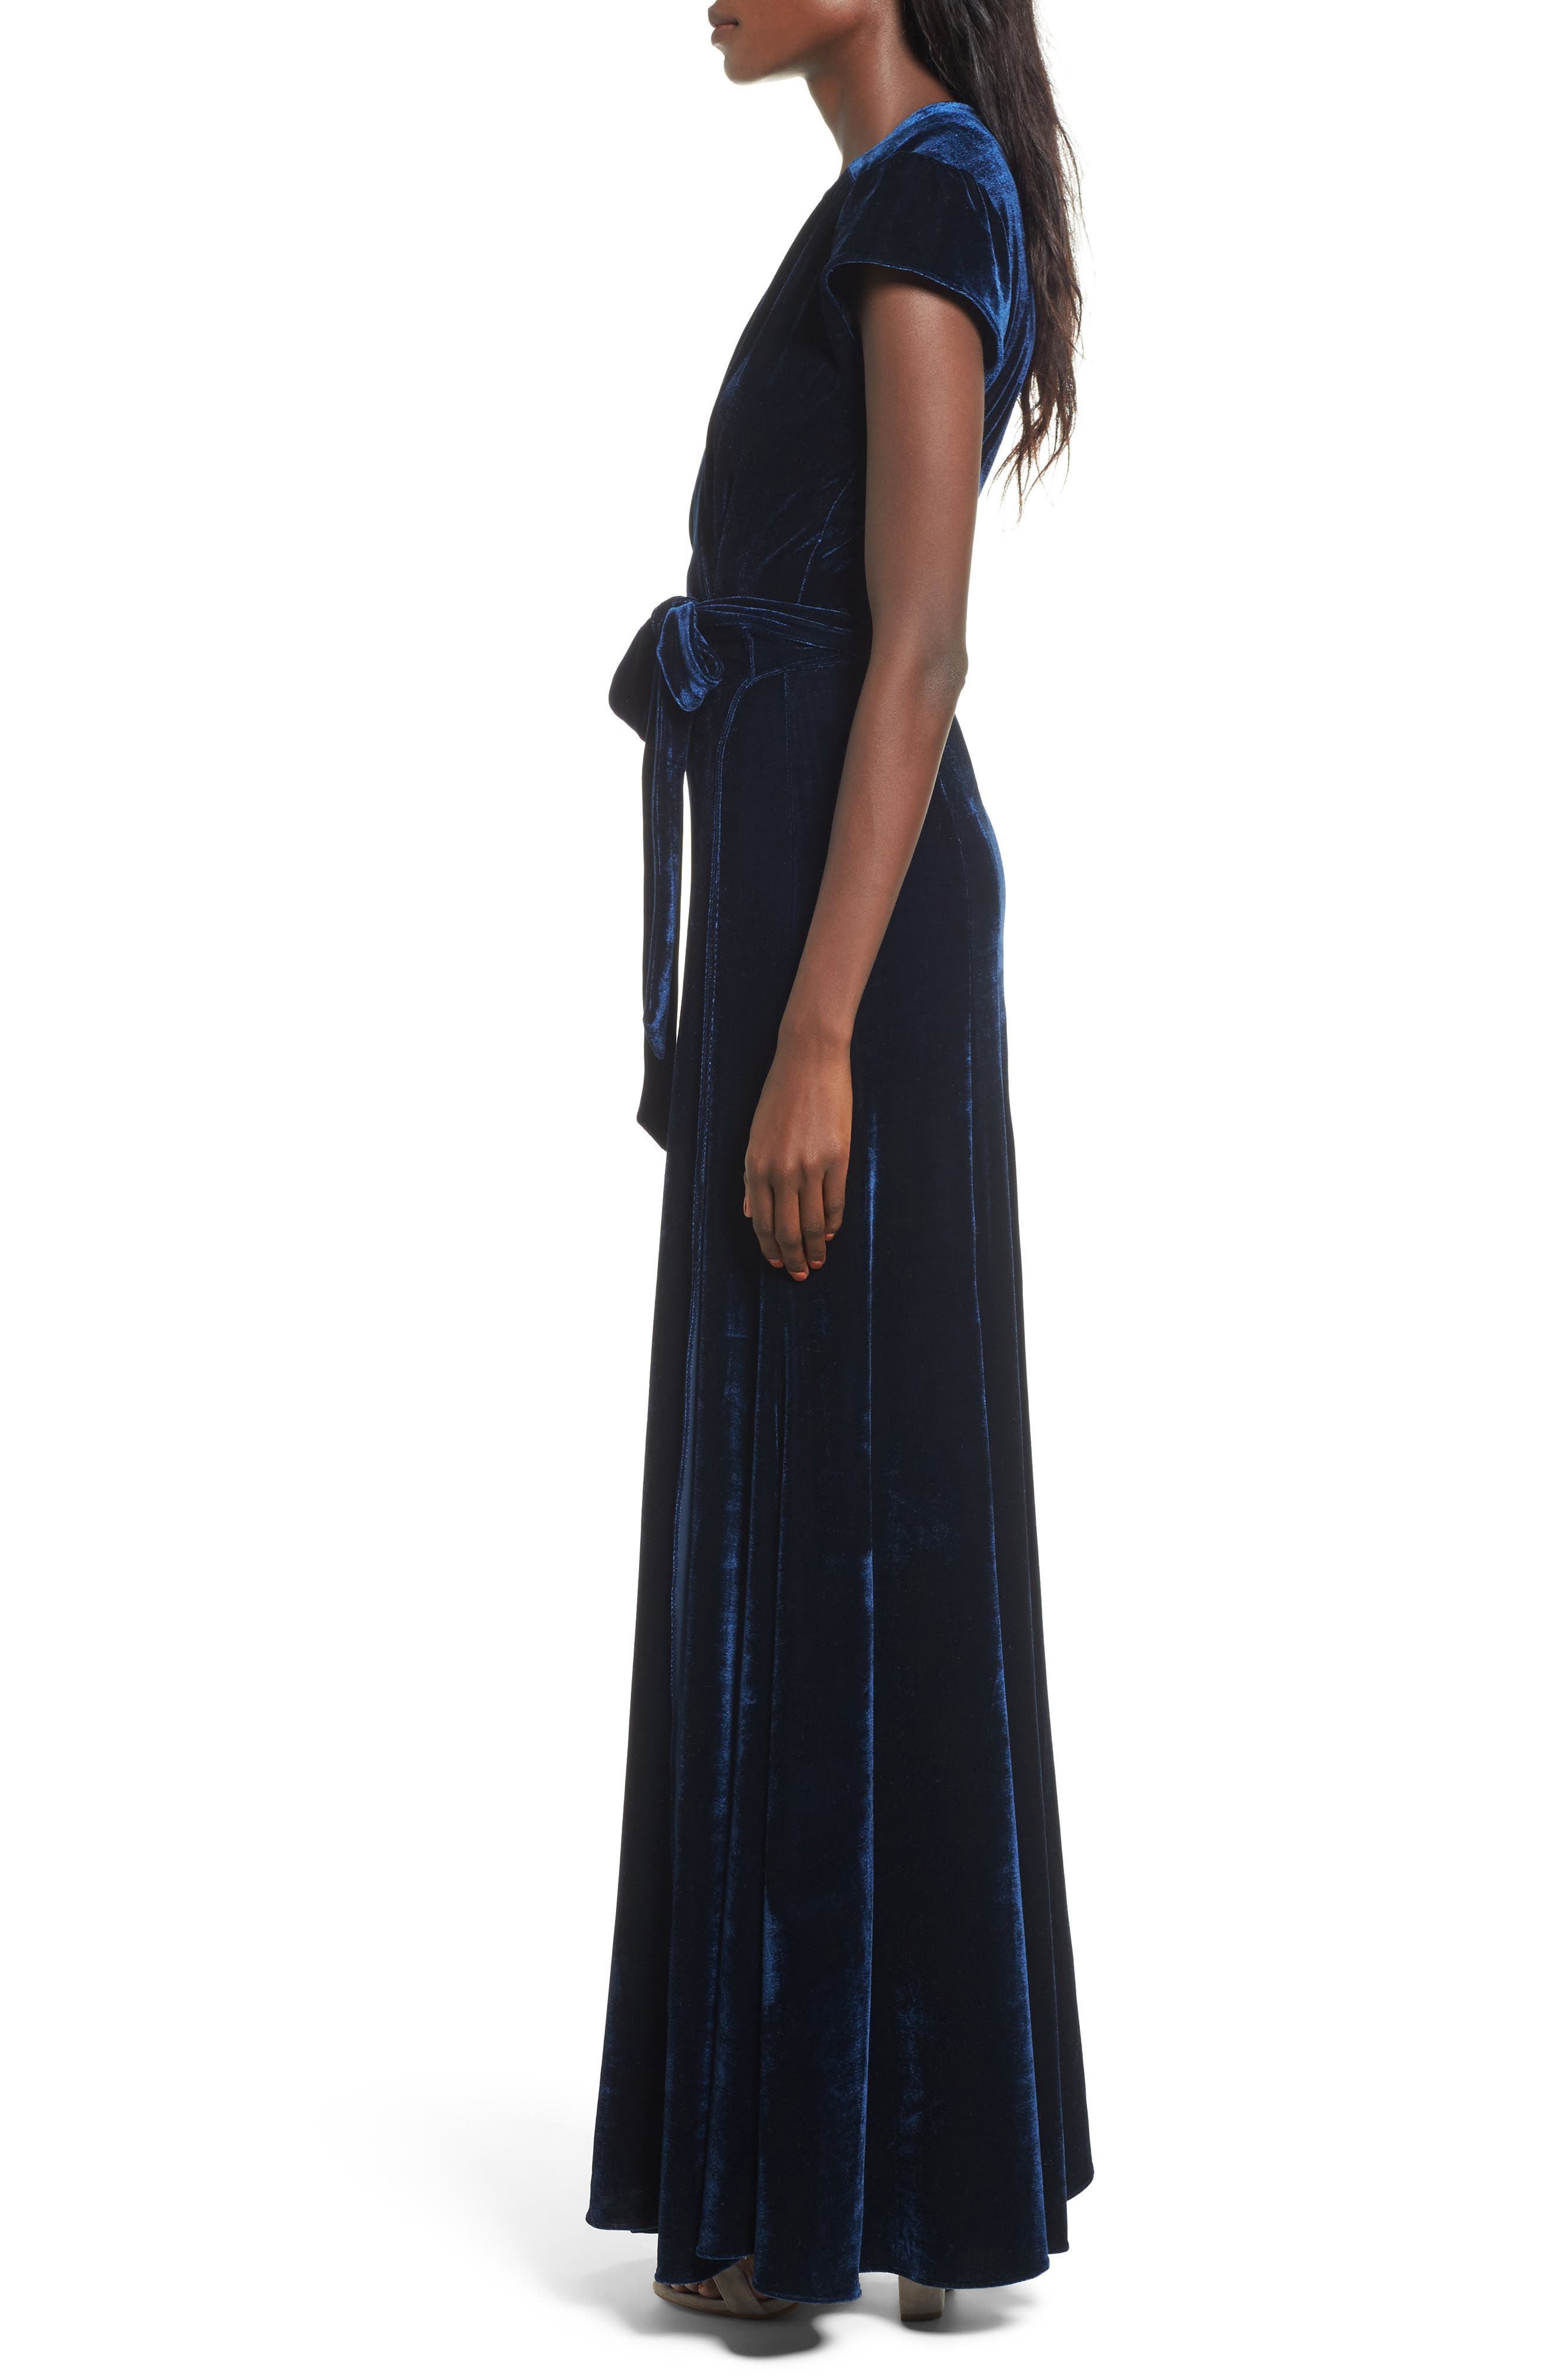 Sid Velvet Wrap Maxi Dress,                             Alternate thumbnail 3, color,                             400